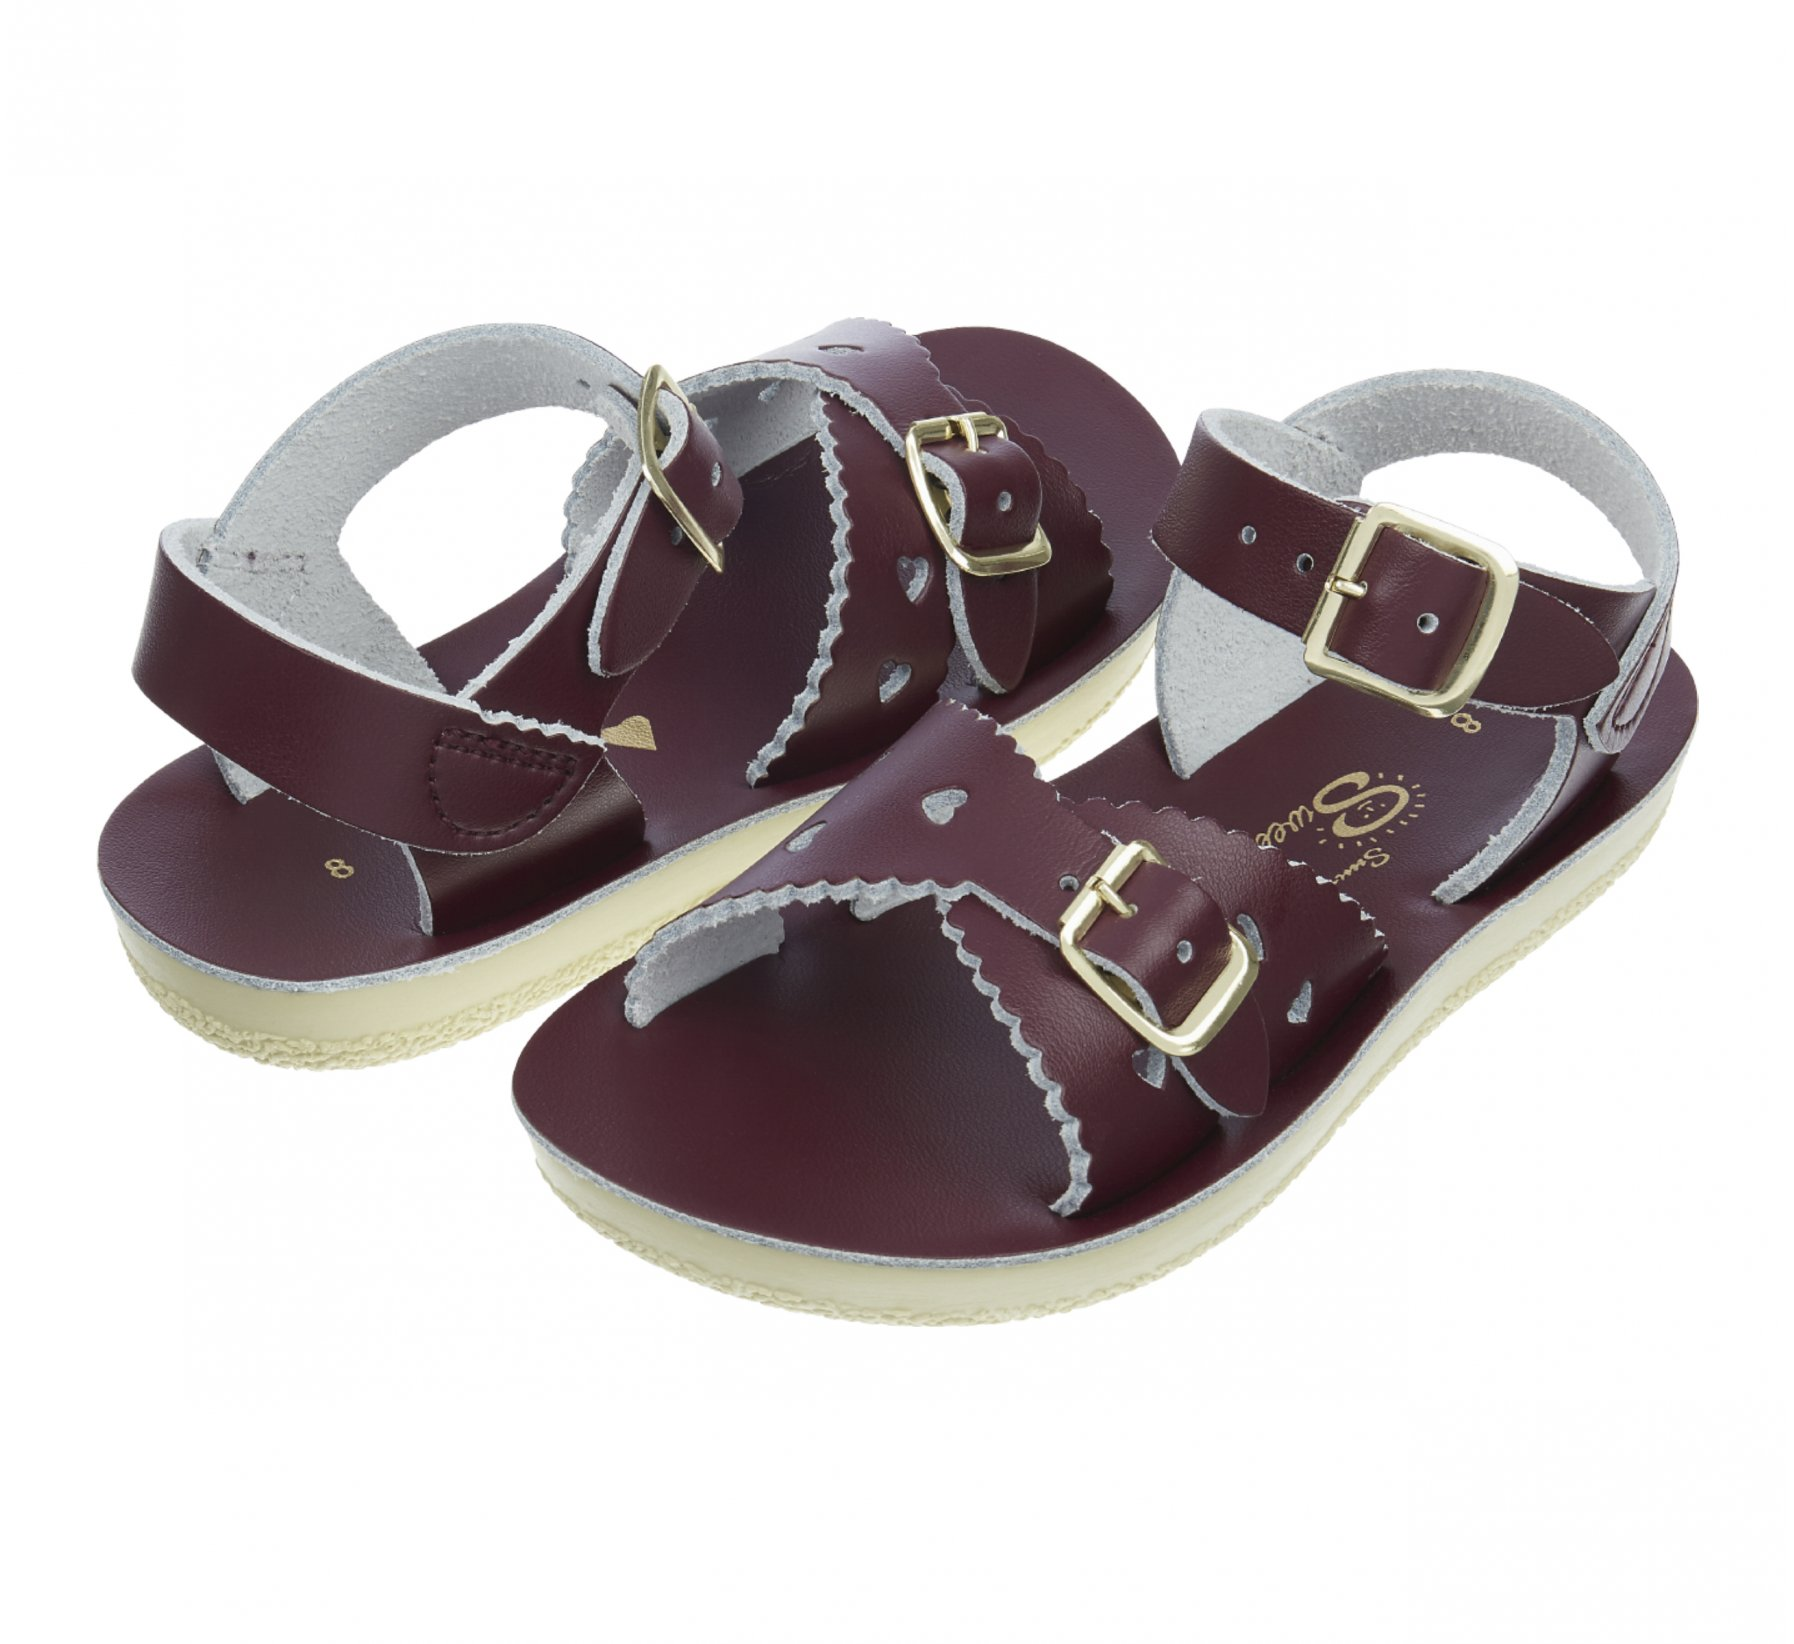 Sweetheart Claret  - Salt Water Sandals